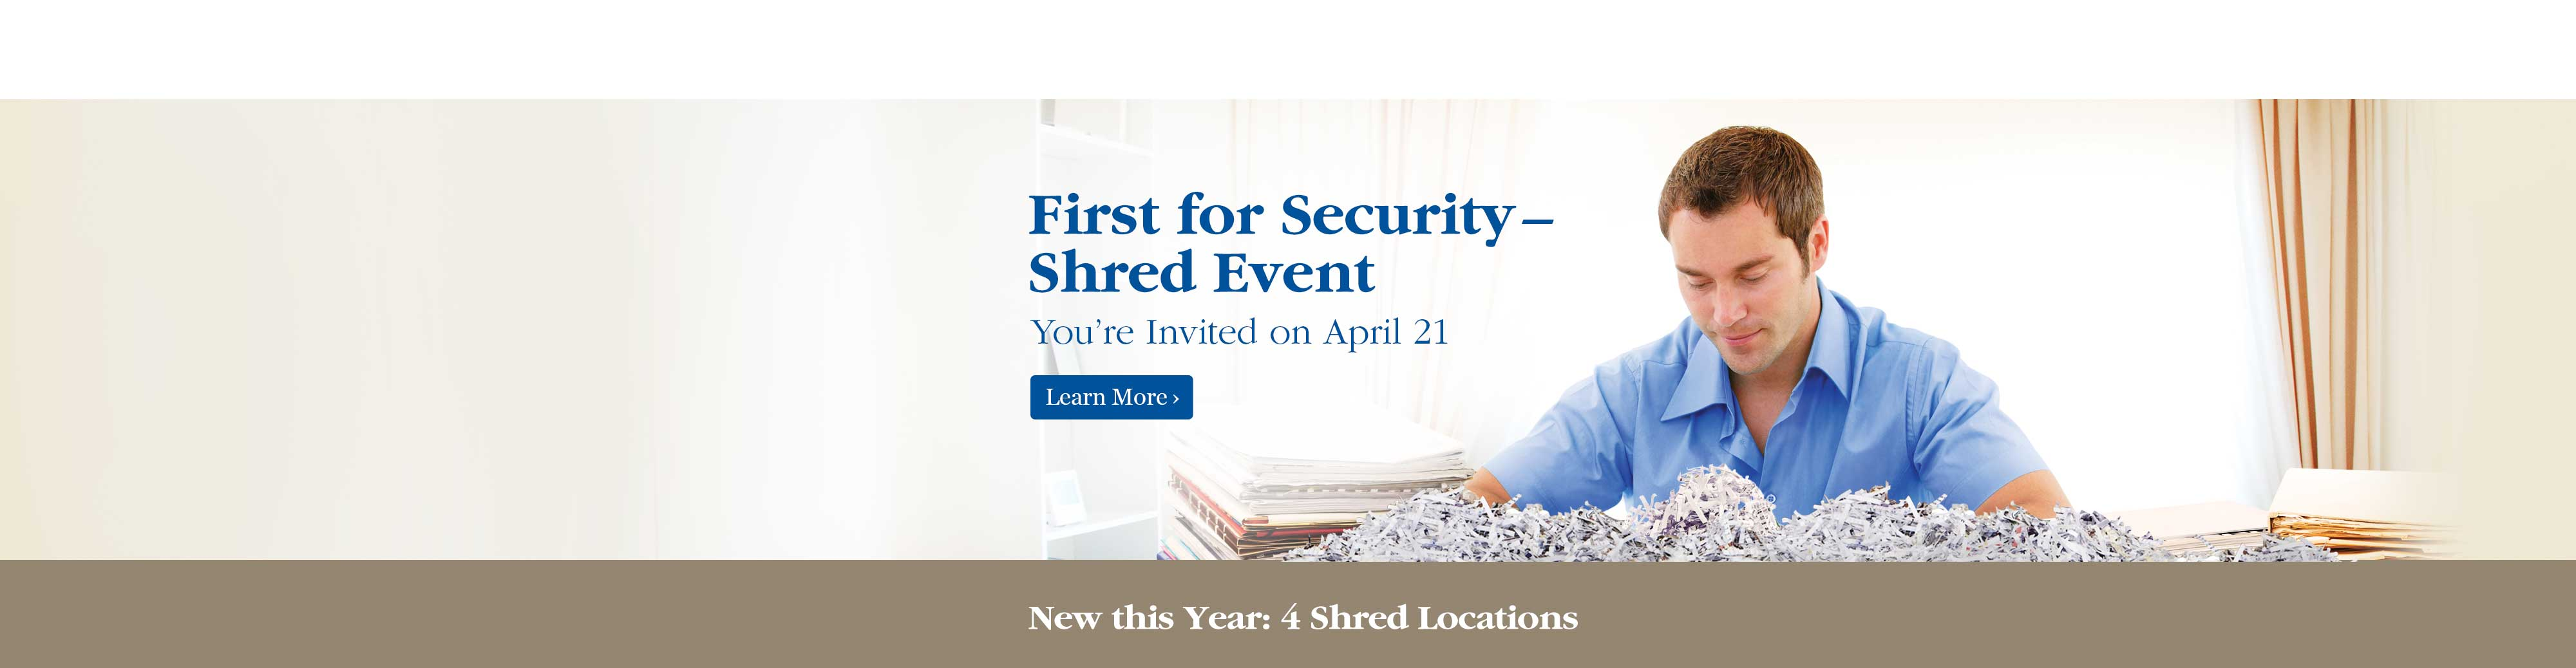 First for Security - Shred Event.  You're Invited on April 21.  Learn More.  | New this Year: 4 Shred Locations